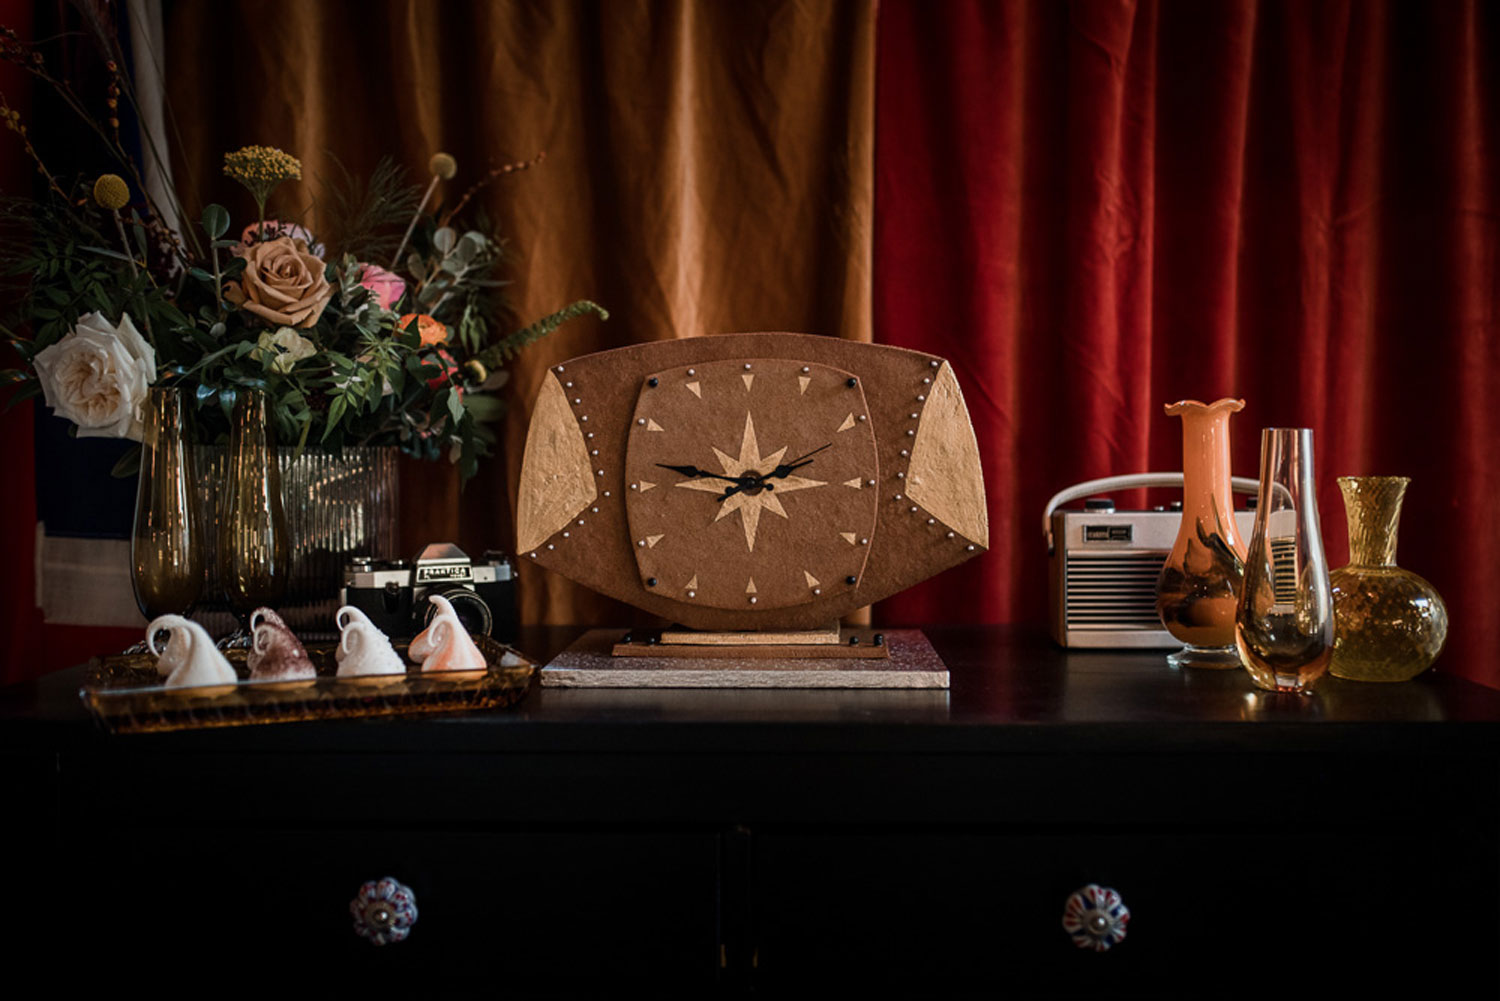 gingerbread mantlepiece clock vintage roberts radio and camera 1970s mid century furniture